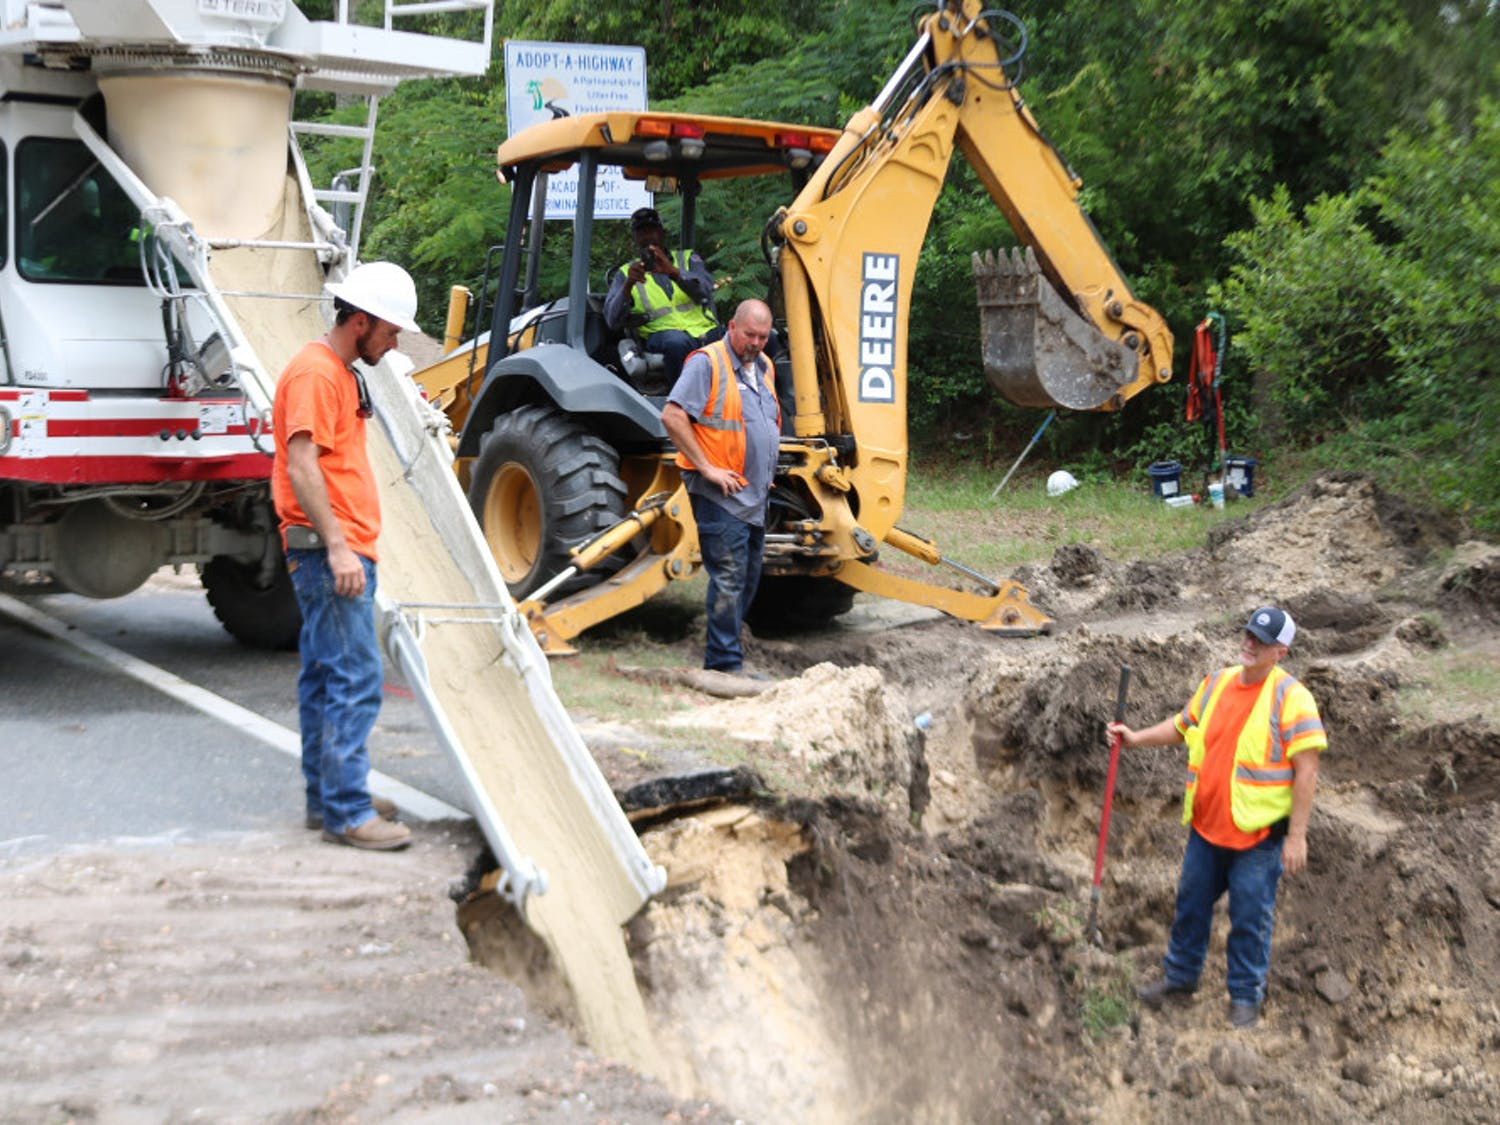 Construction workers from Newberry utilities pour concrete to fill a 20-foot deep sinkhole that opened on West Newberry Road on Wednesday morning.